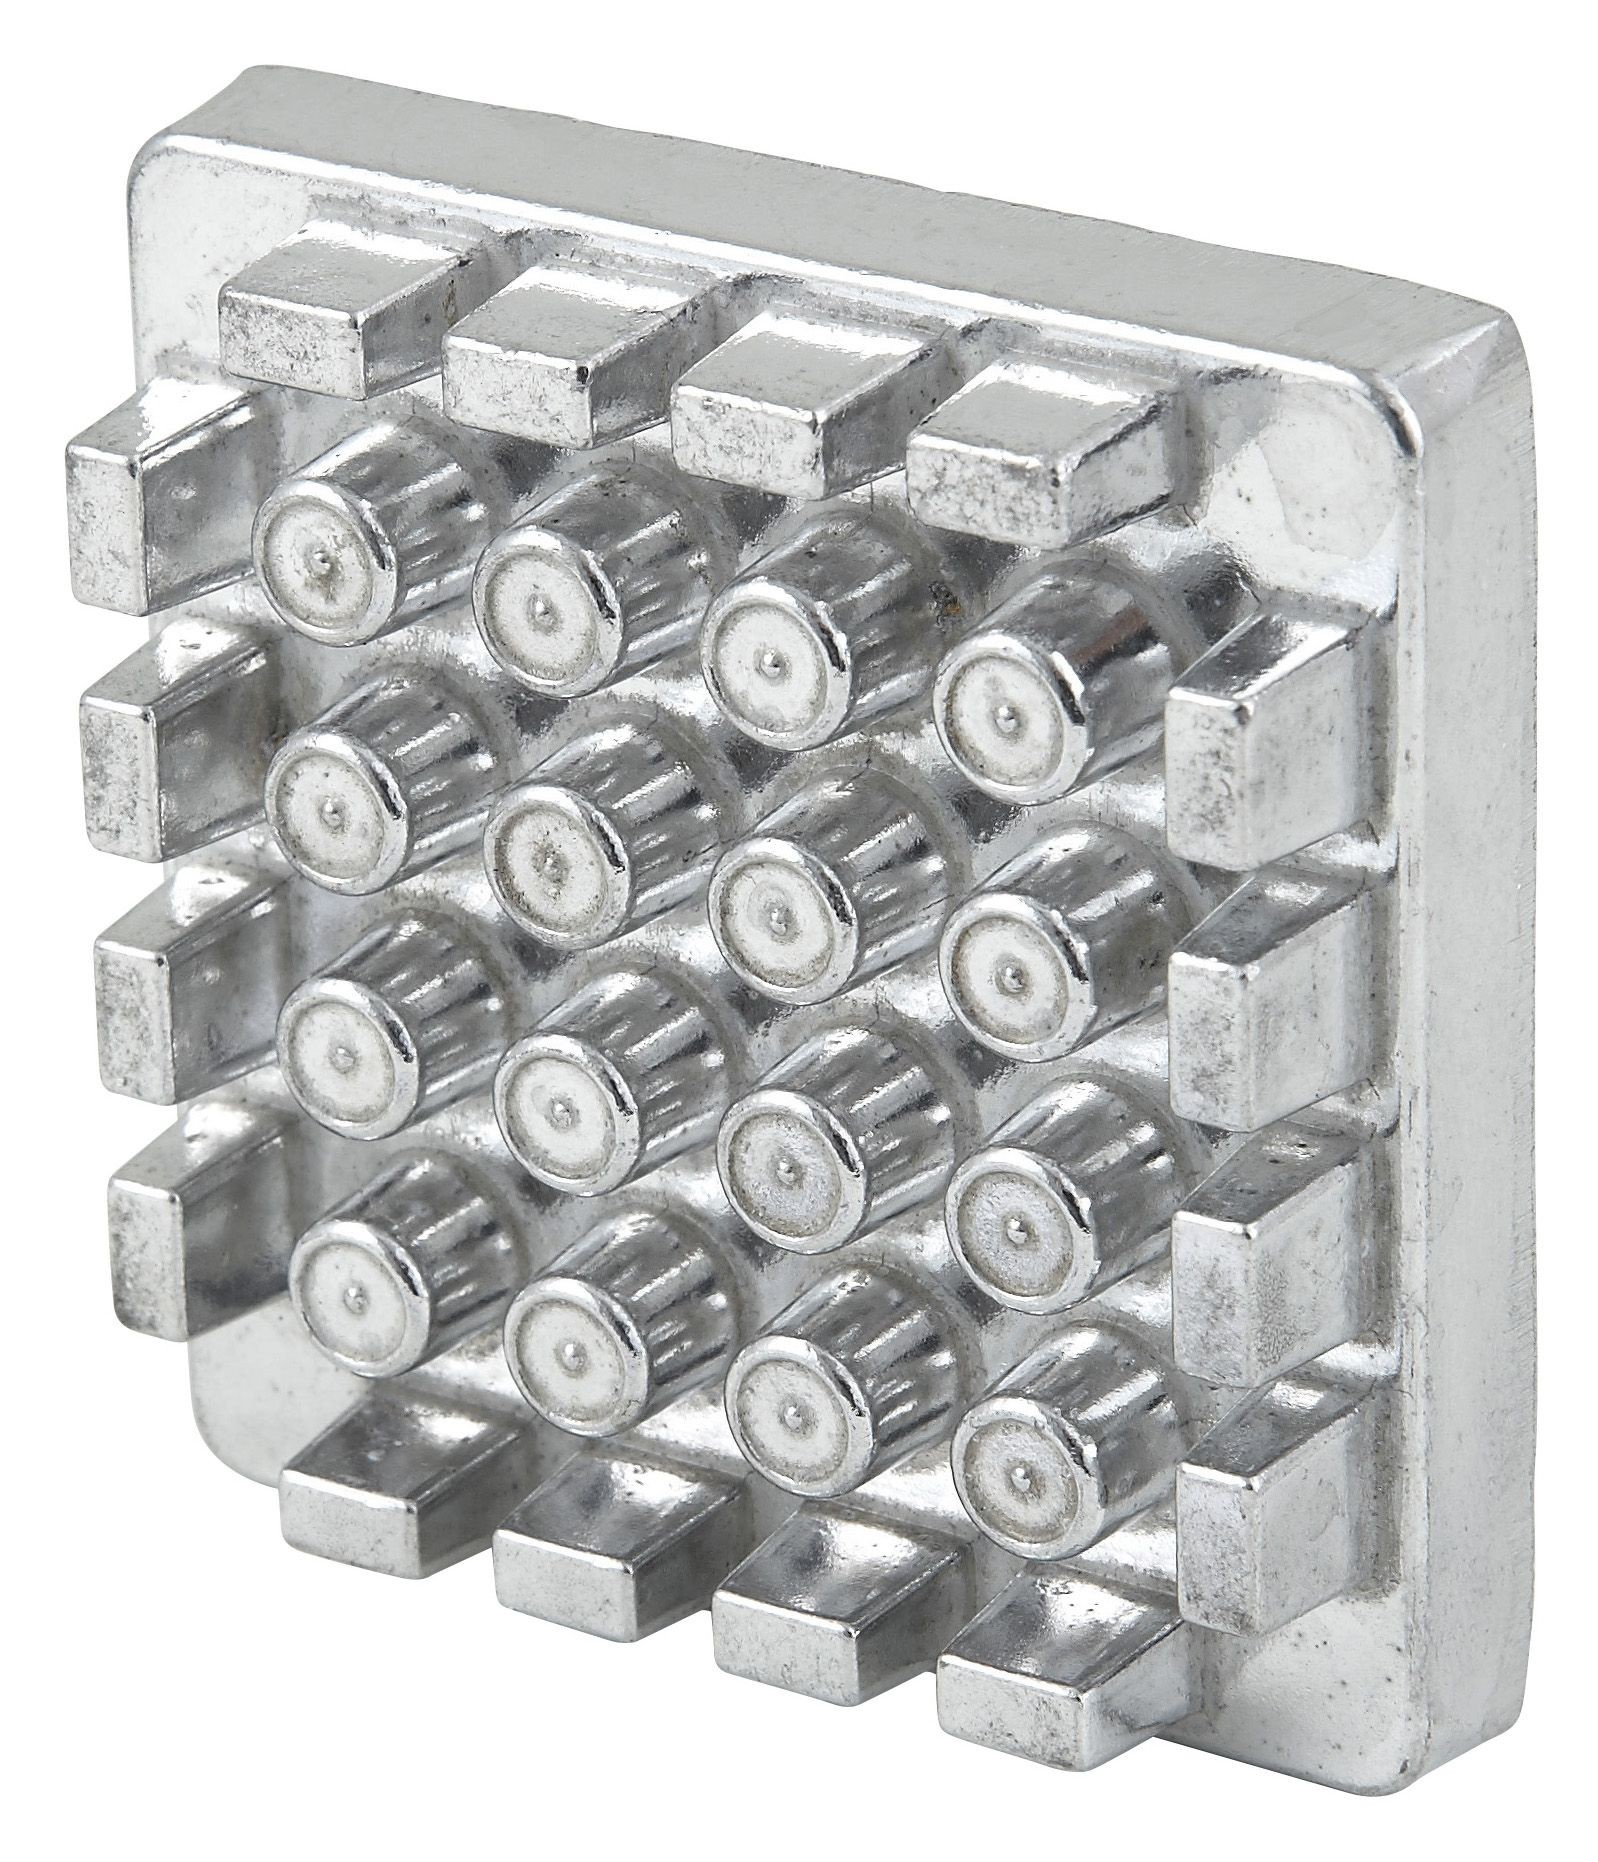 Pusher Block For French Fry Cutter (FFC-500)